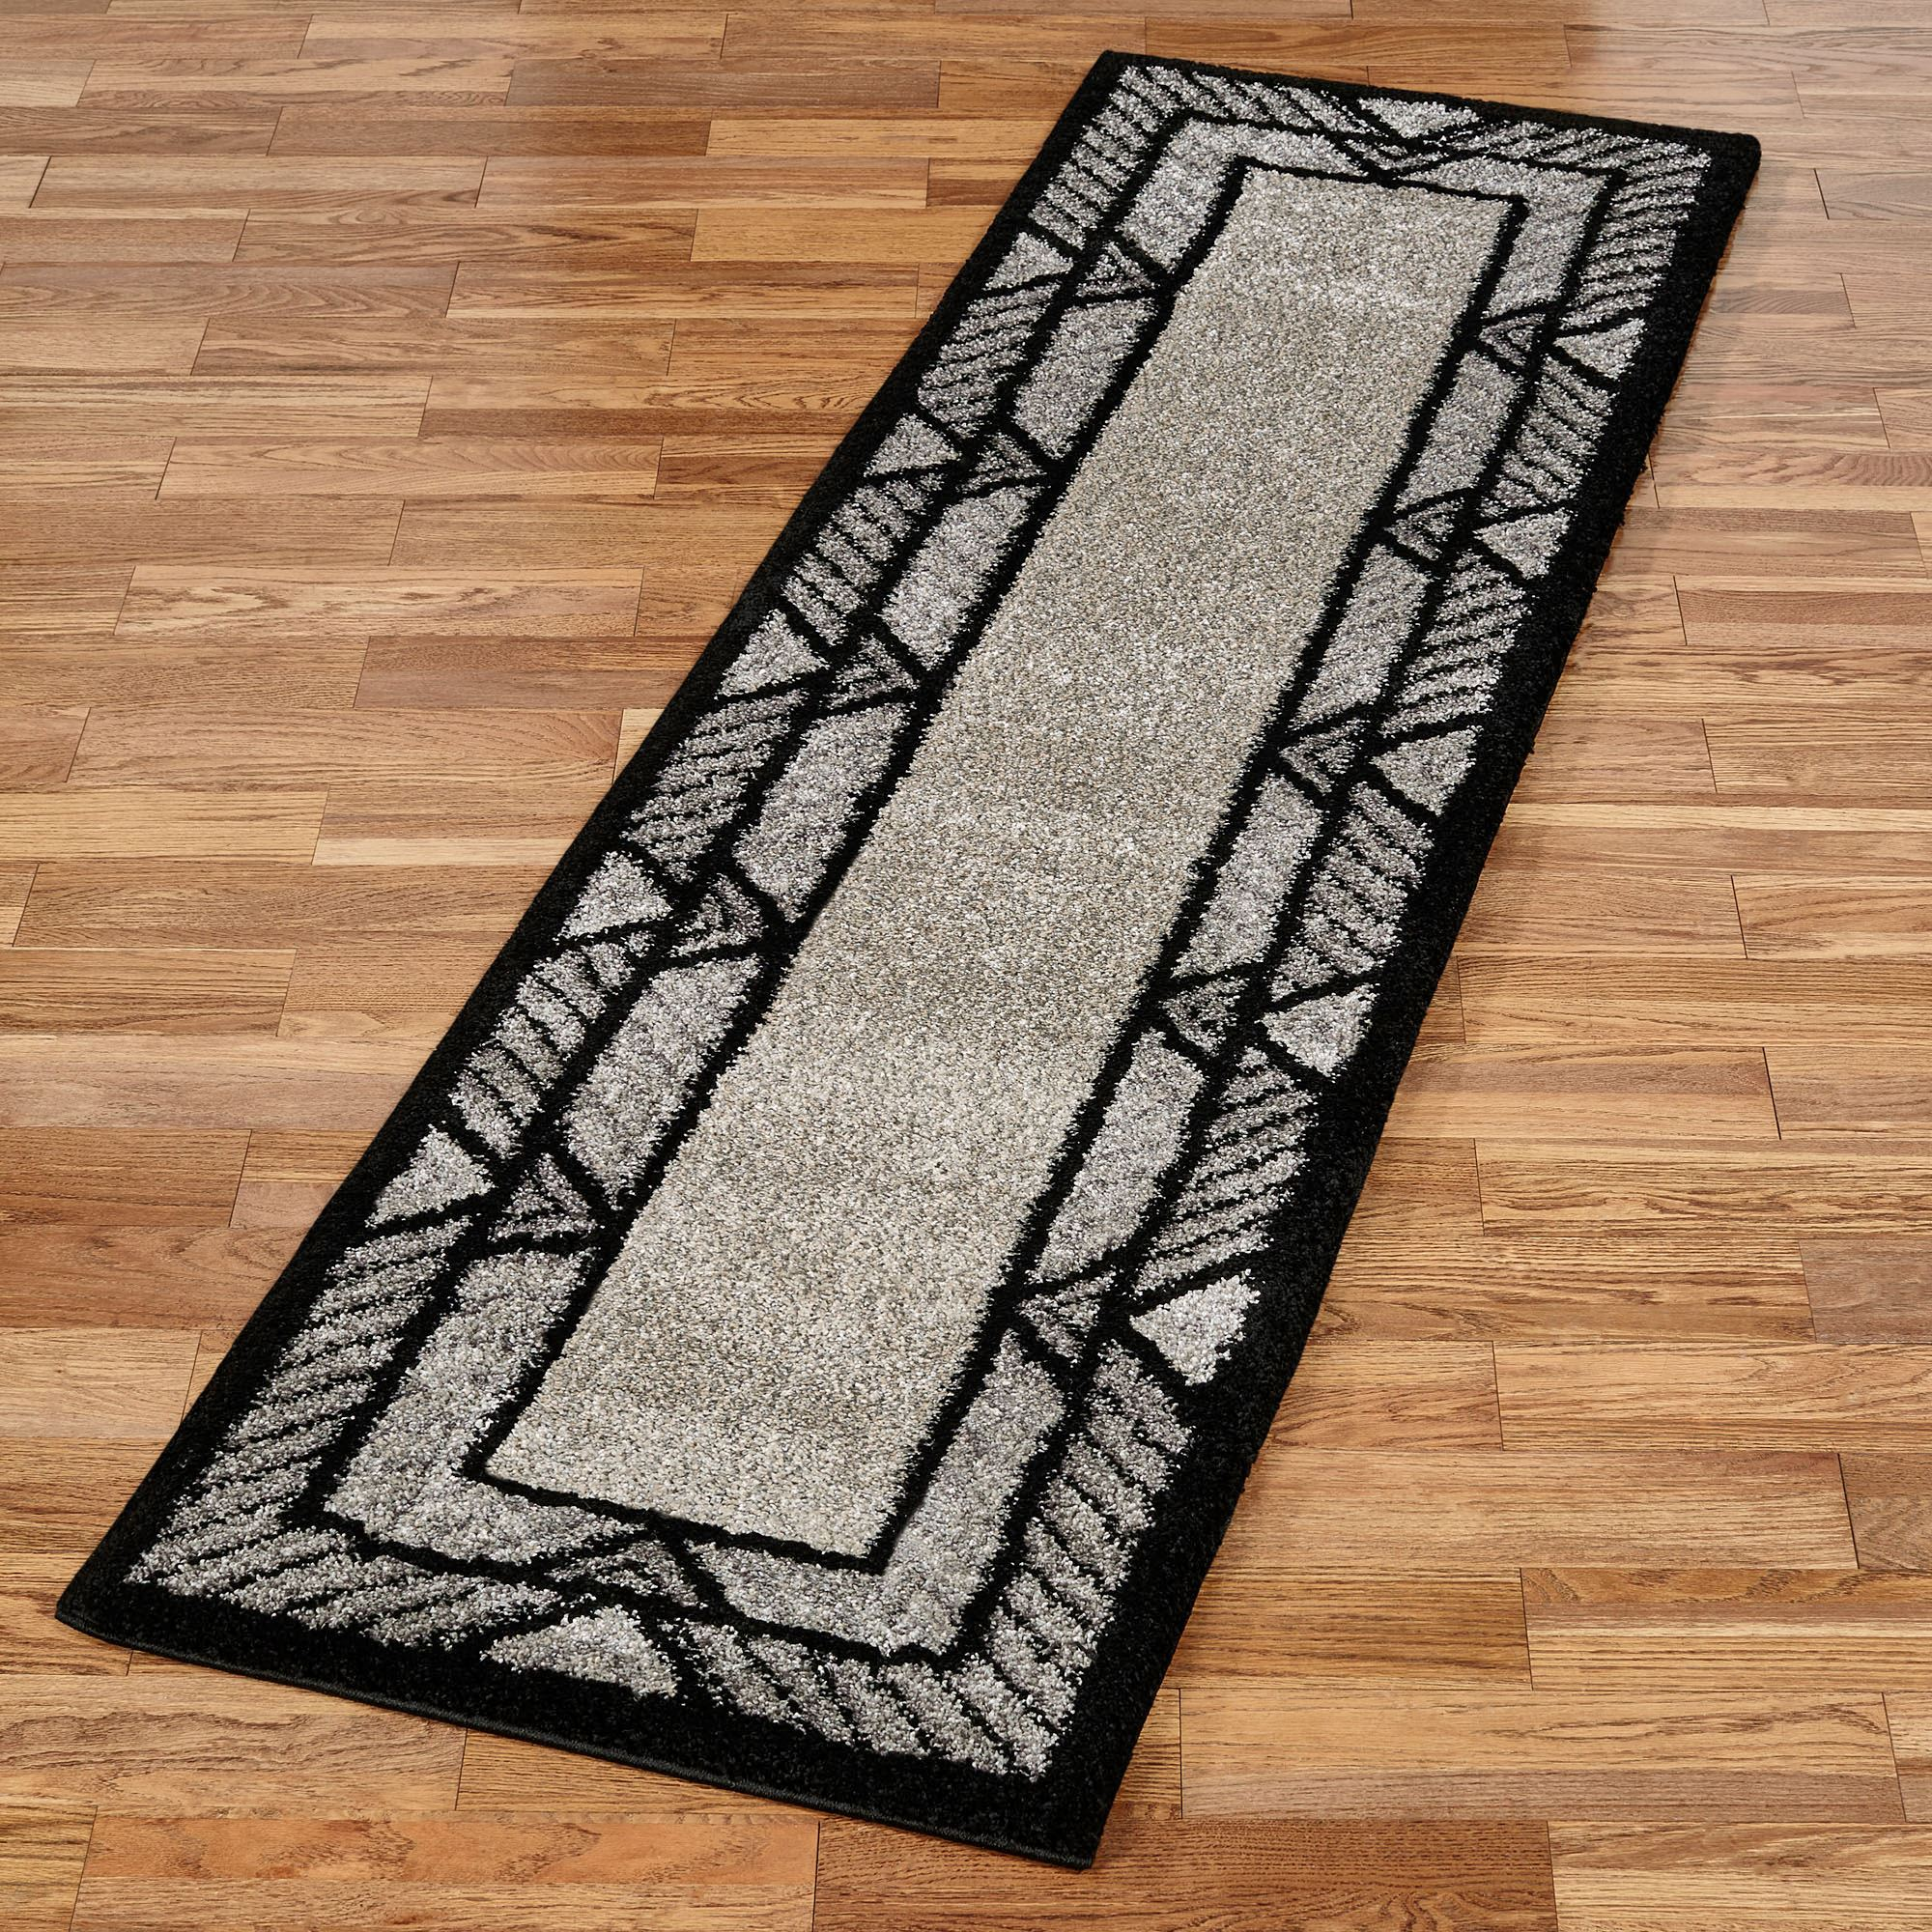 safavieh handmade shag stunning black arctic australia rug wa sophisticated relaxing rugs shaggy in blacklear new decorative ideas accessories to ideal metro